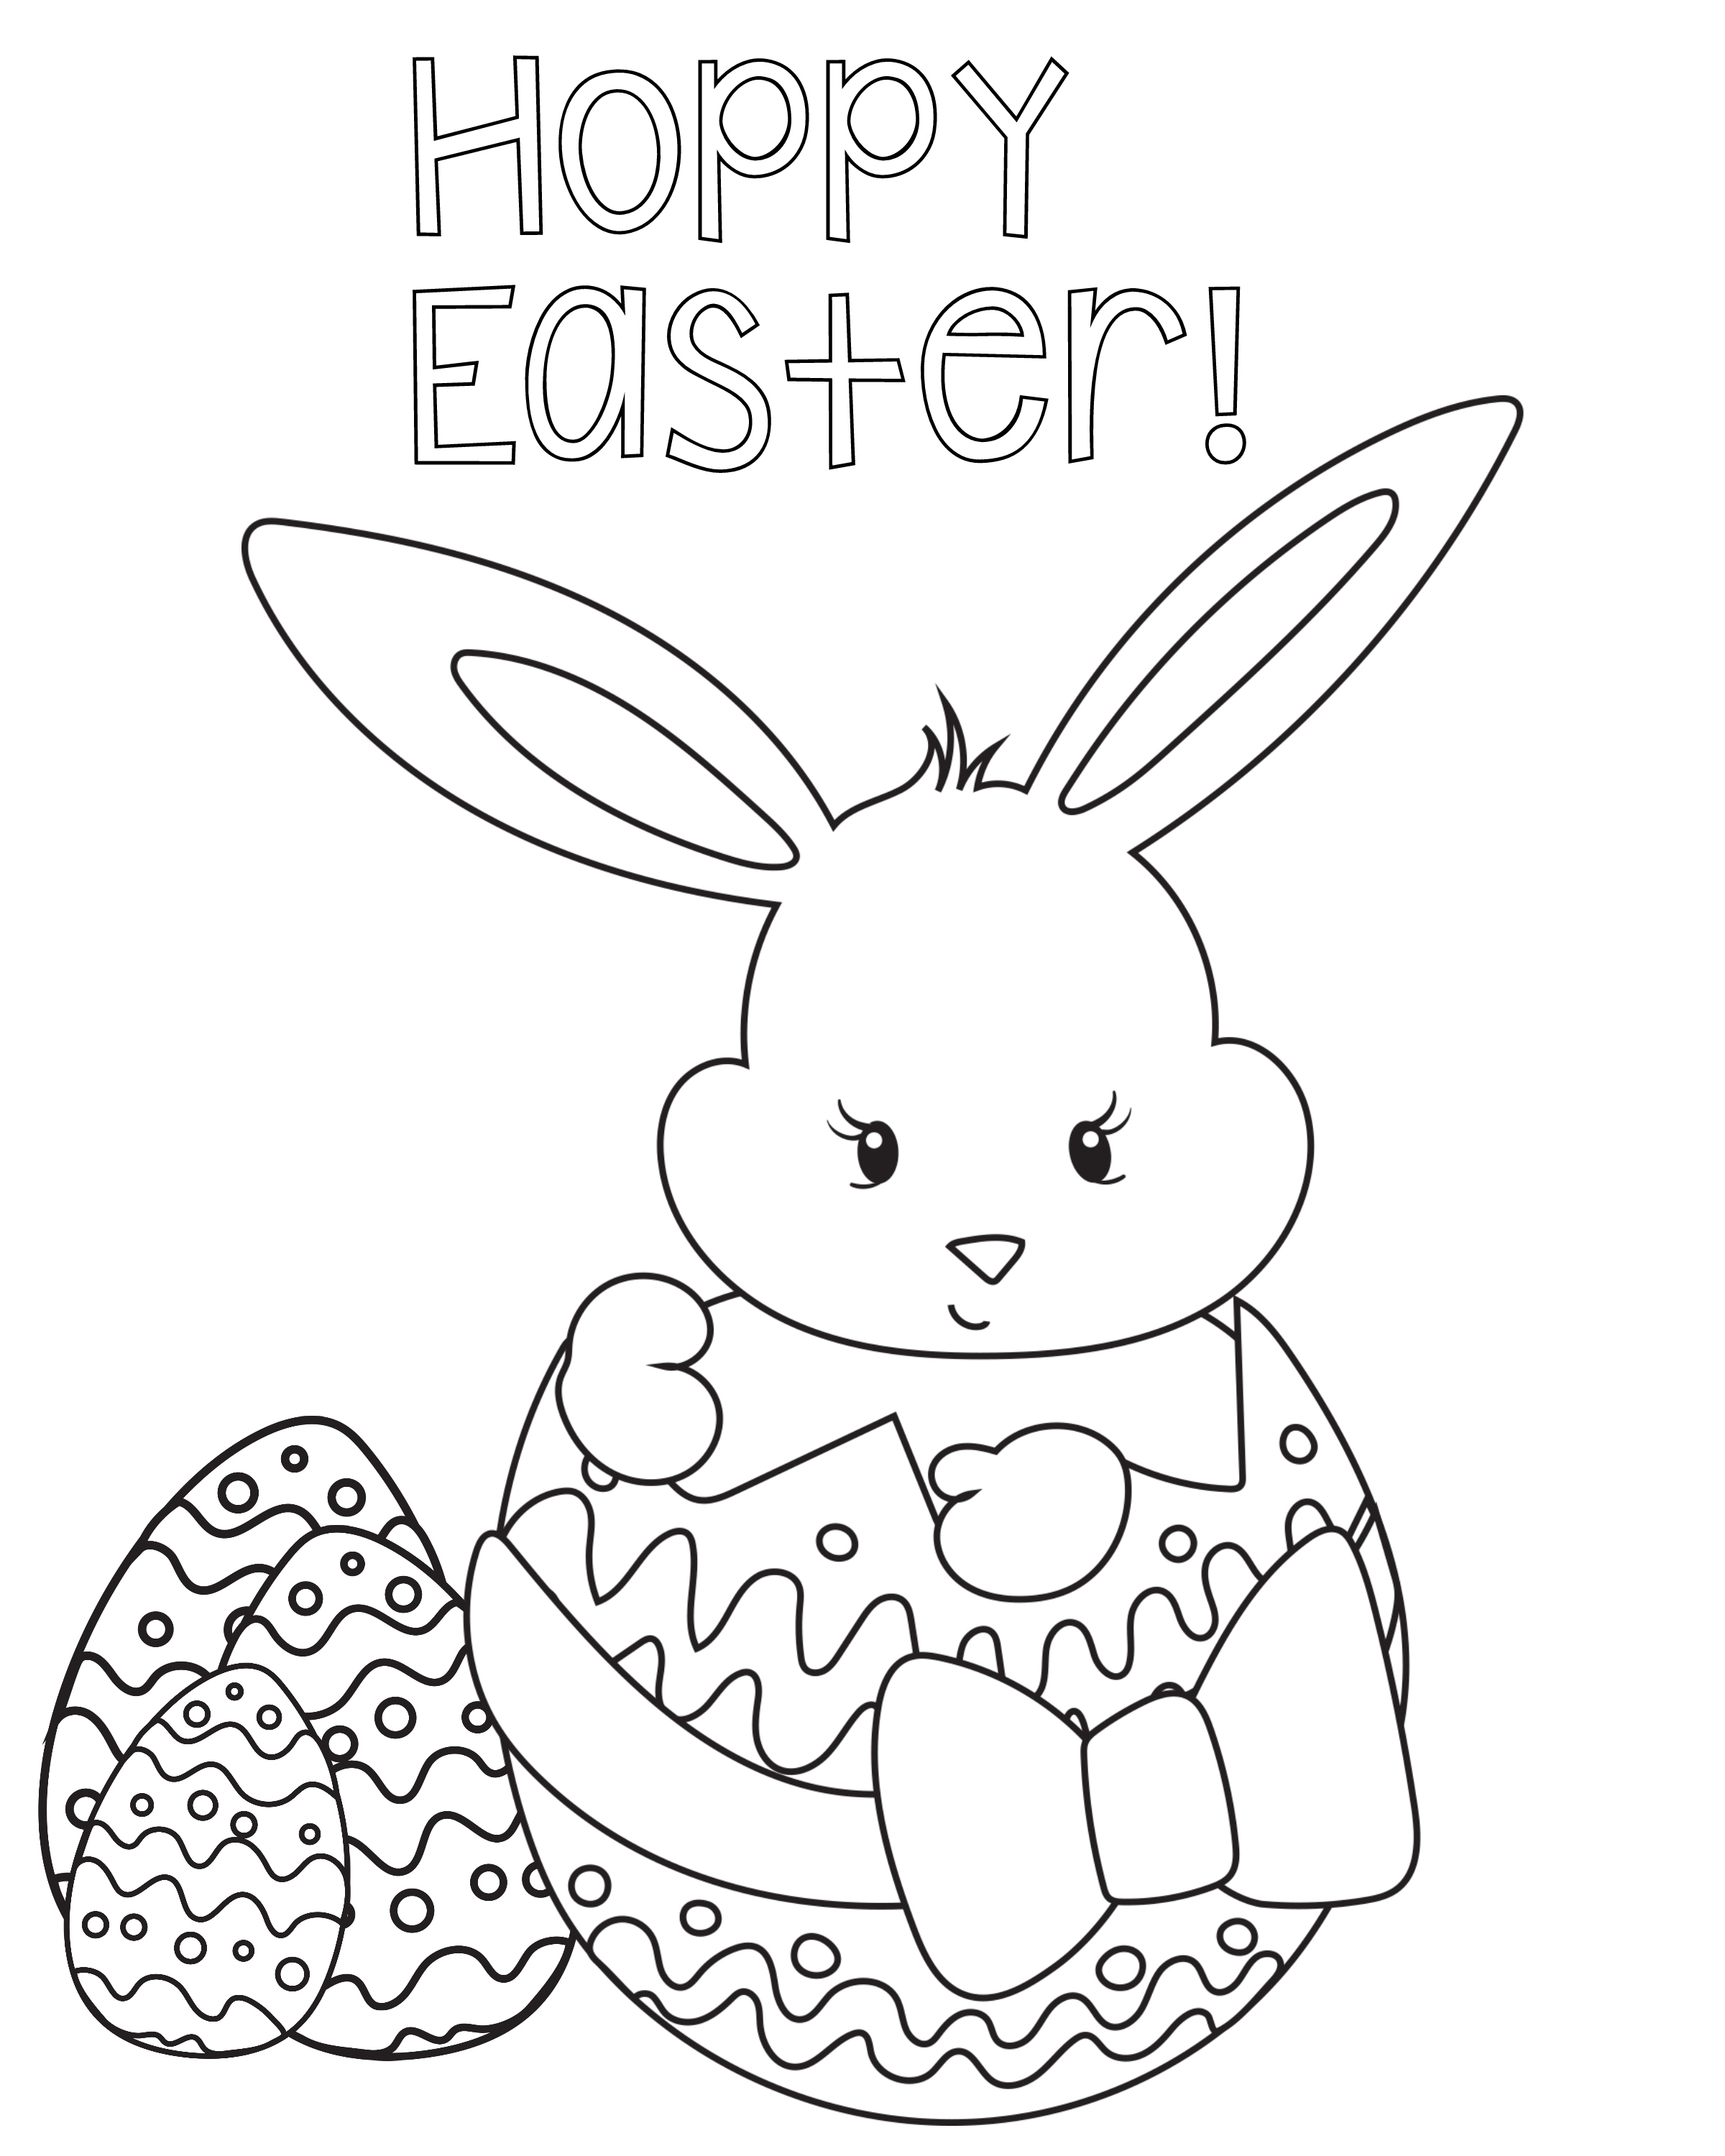 Coloring Easter Pages to Print - Delighted Bunny Print Out Coloring Pages Easter for Kids Crazy Printable